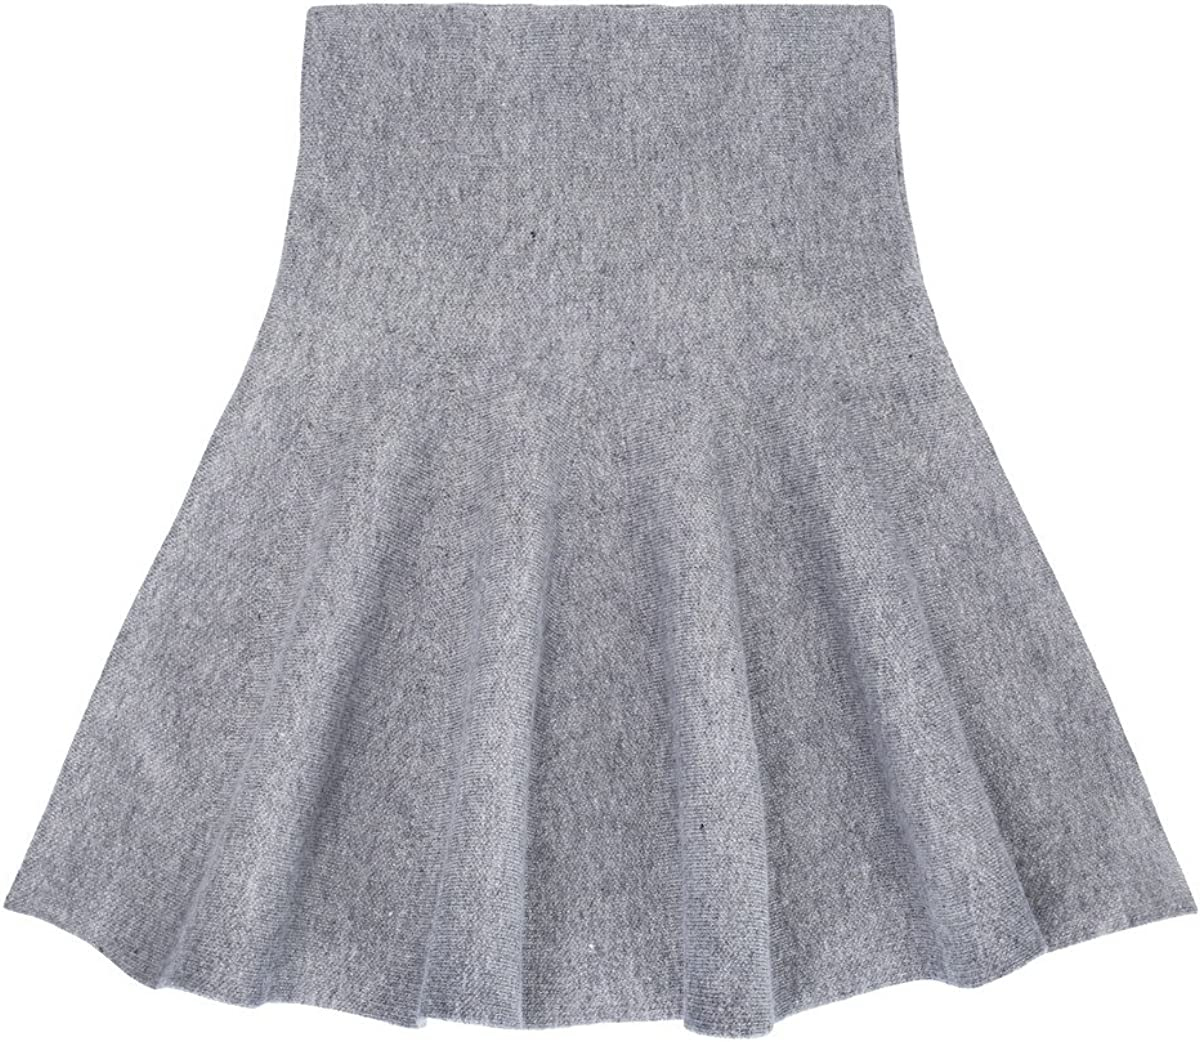 storeofbaby Girls Skirt High Waist Knitted Flared Pleated Casual Skater Skirts